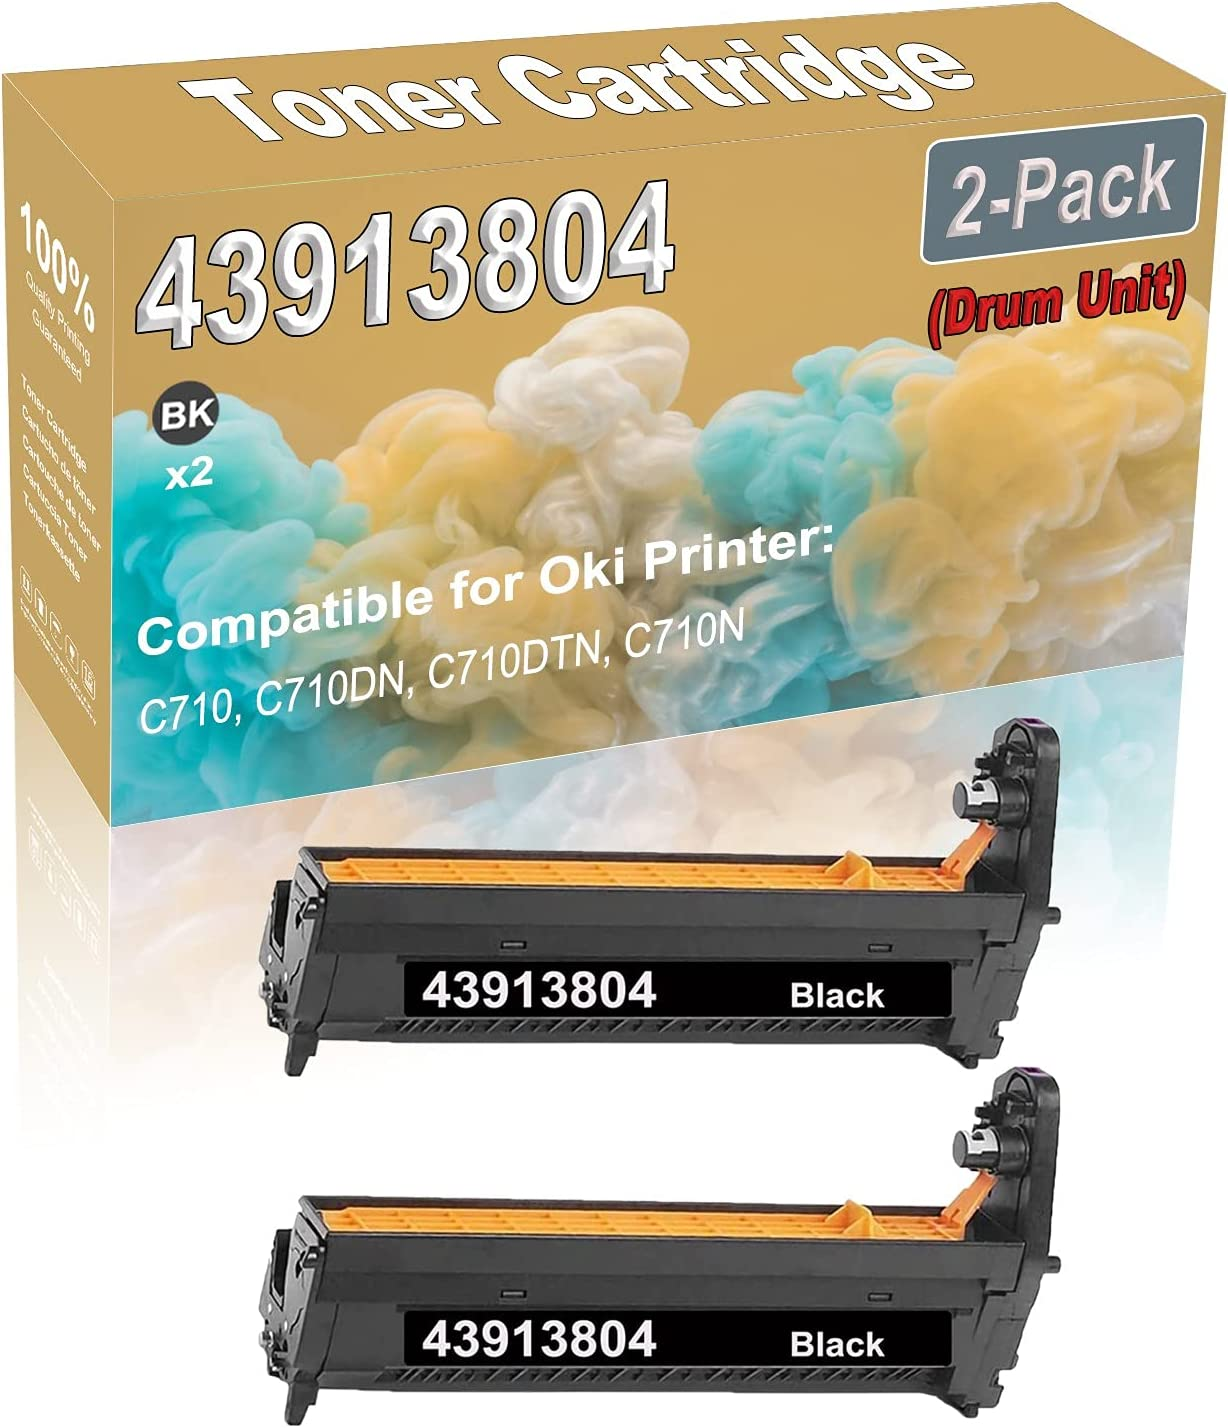 Compatible Drum Unit Replacement for 2-Pack (Black) Oki 43913804 Drum Unit Fit for Oki C710, C710DN, C710DTN, C710N Printer (High Capacity)